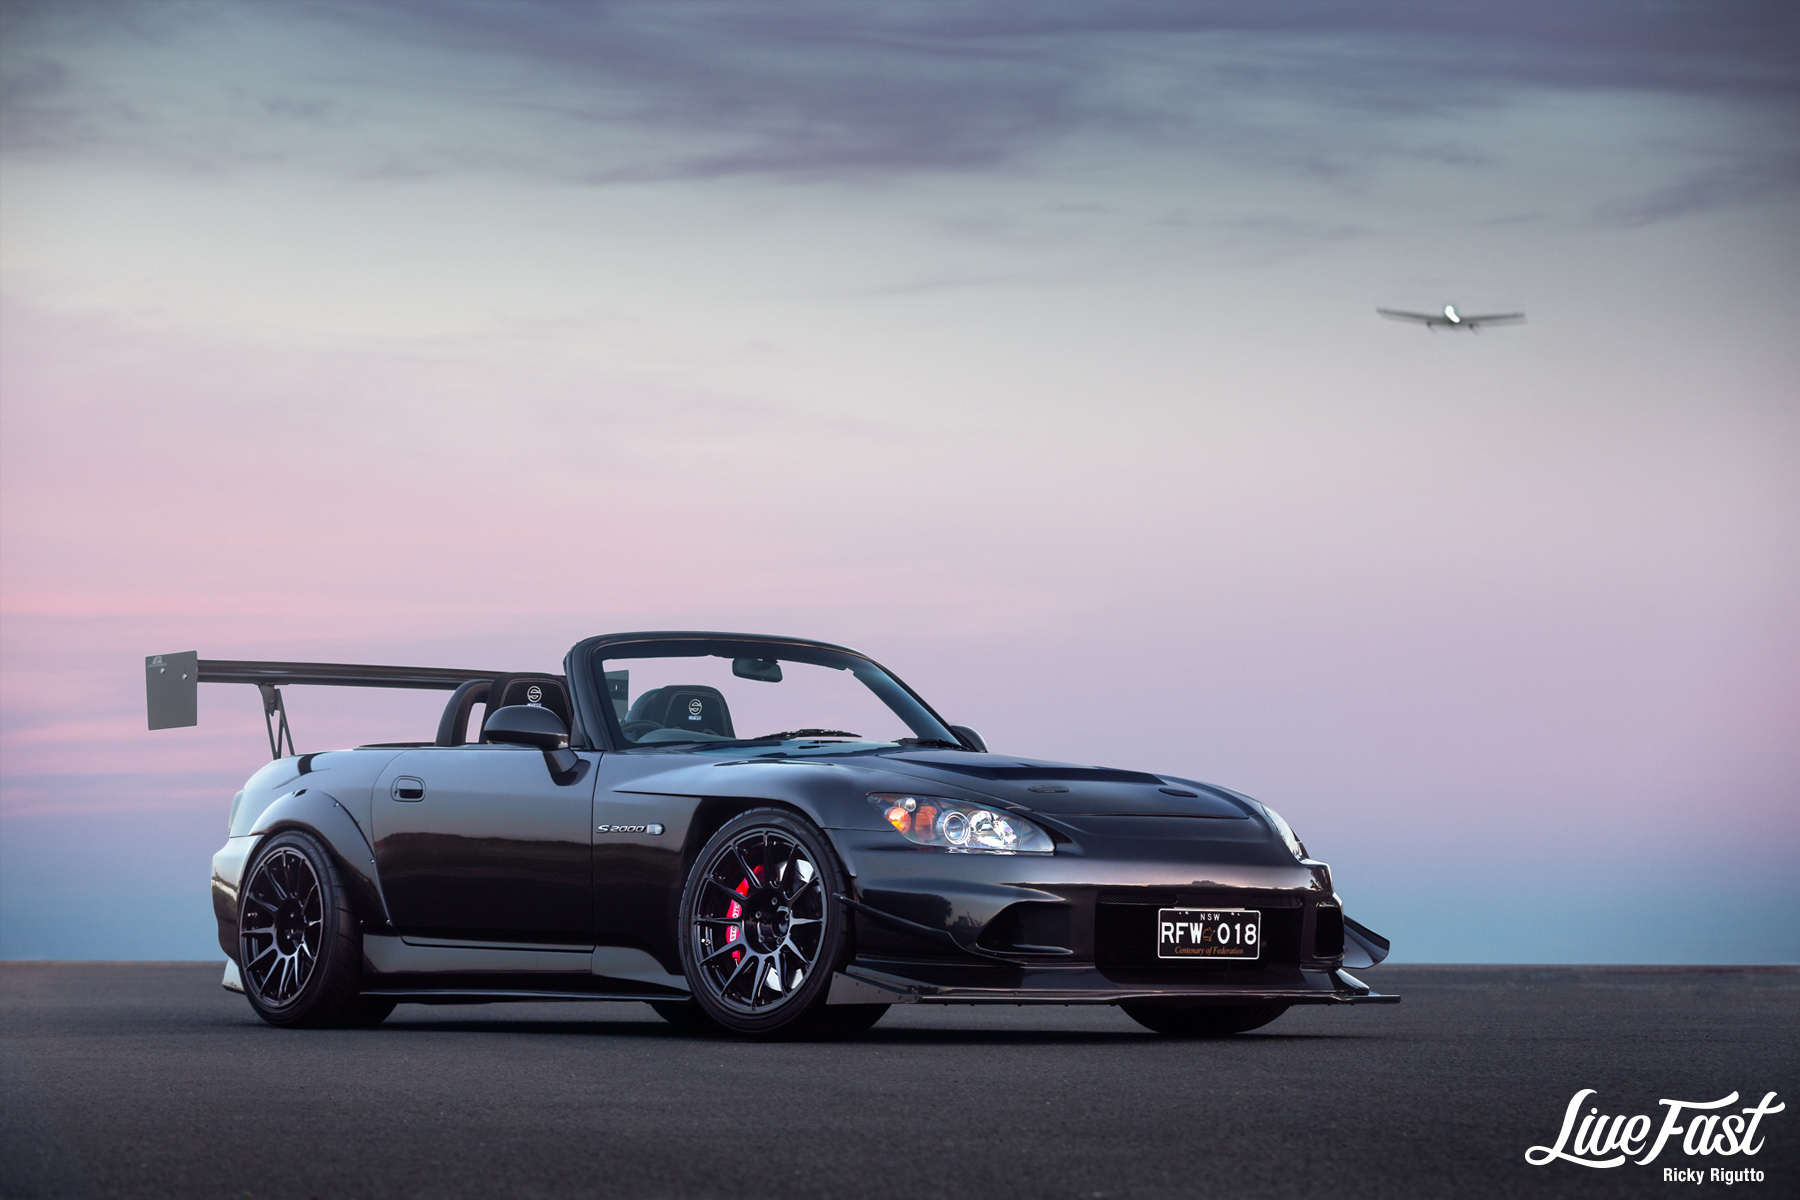 hight resolution of when anthony beljan decided to purchase the s2000 it wasn t because of the engine anthony loved the way the s2000 looked from factory and thought it would